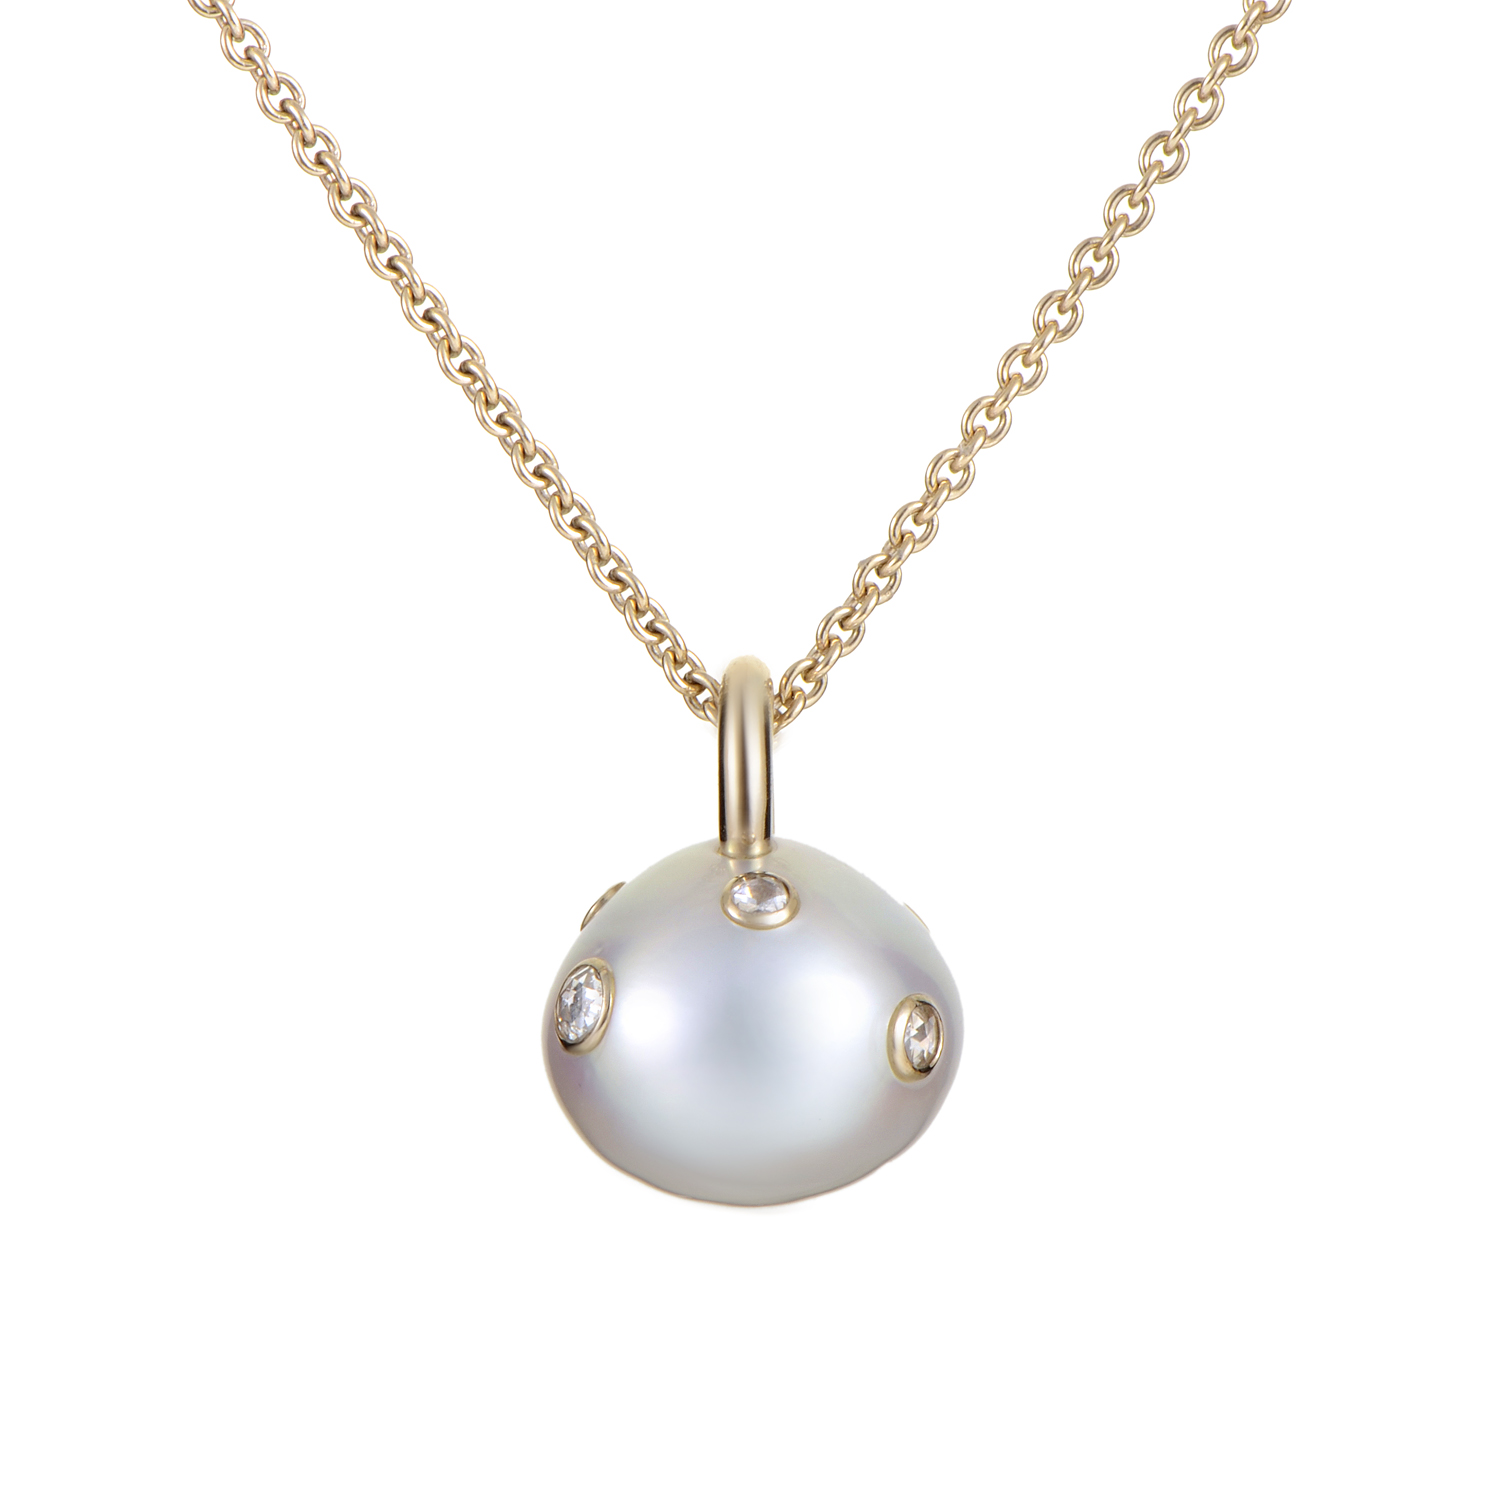 Women's 18K White Gold Diamond Studded Cultured Pearl Pendant Necklace